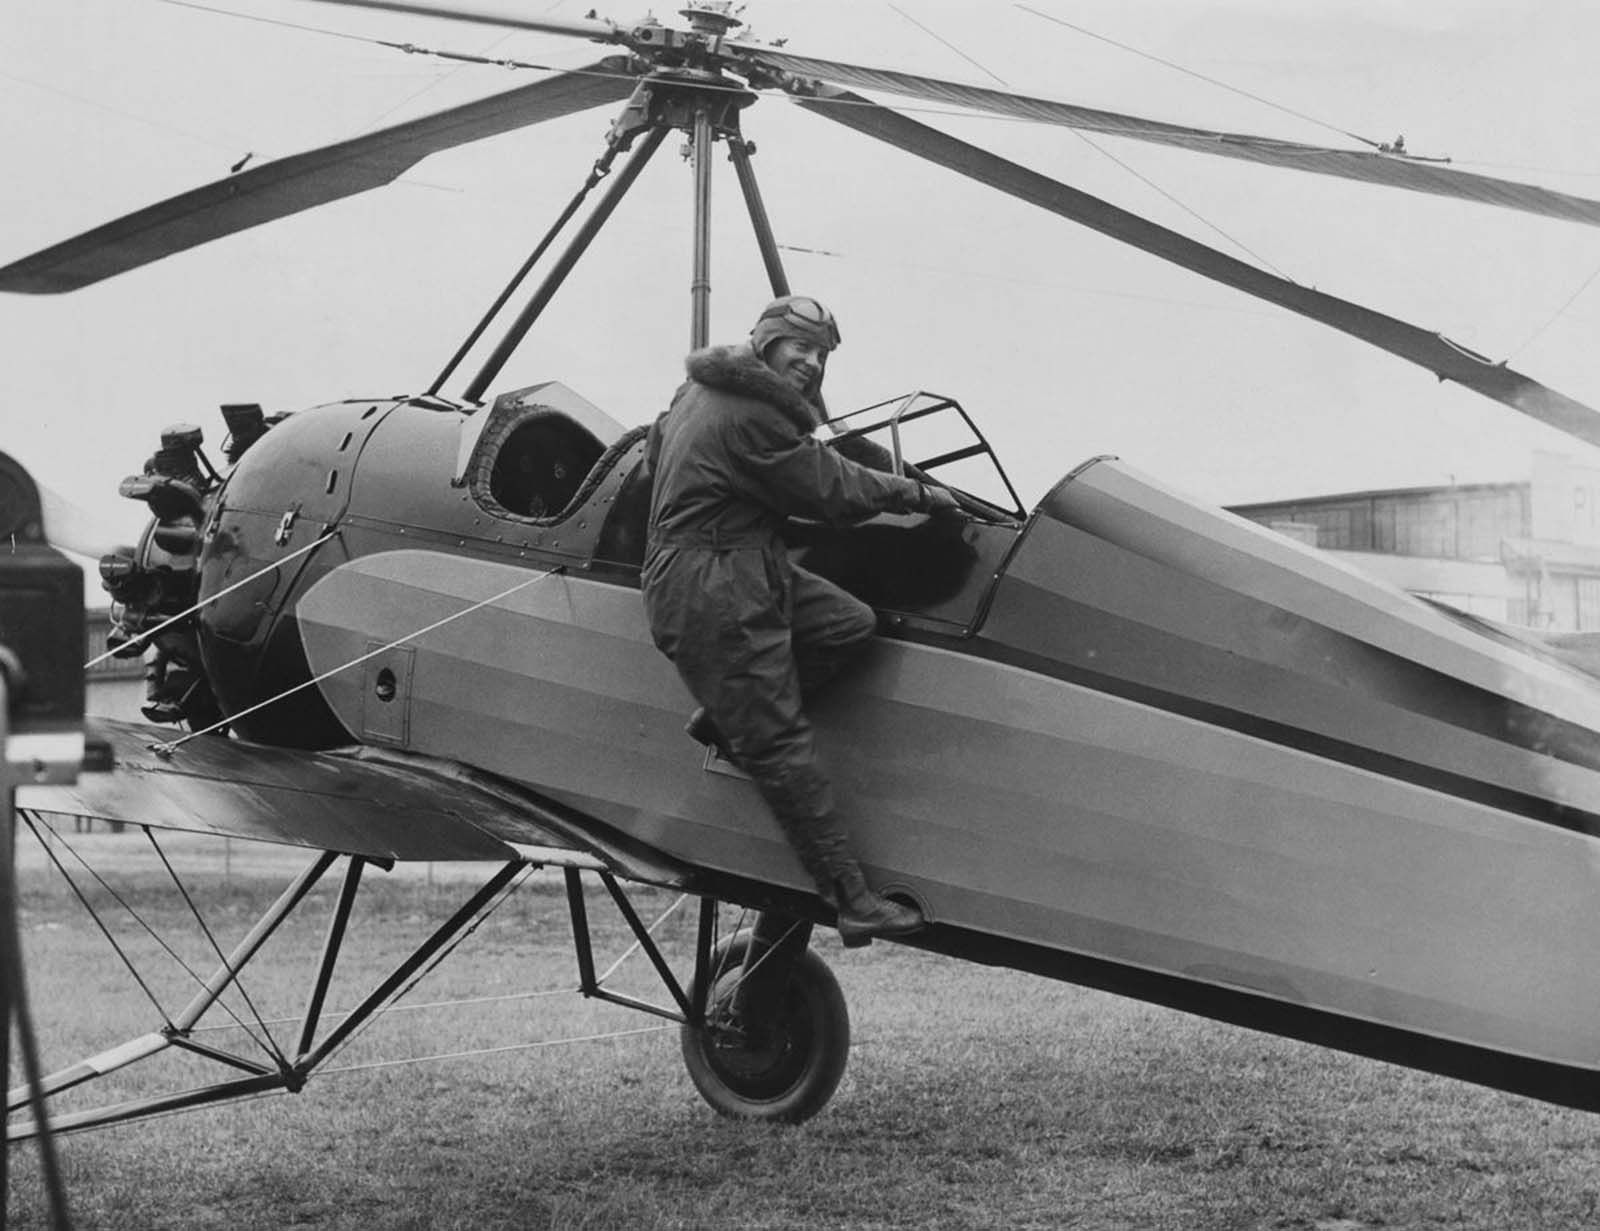 Amelia Earhart boards an autogyro, with which she set a women's autogyro altitude record of 18,415 feet in April 1931.